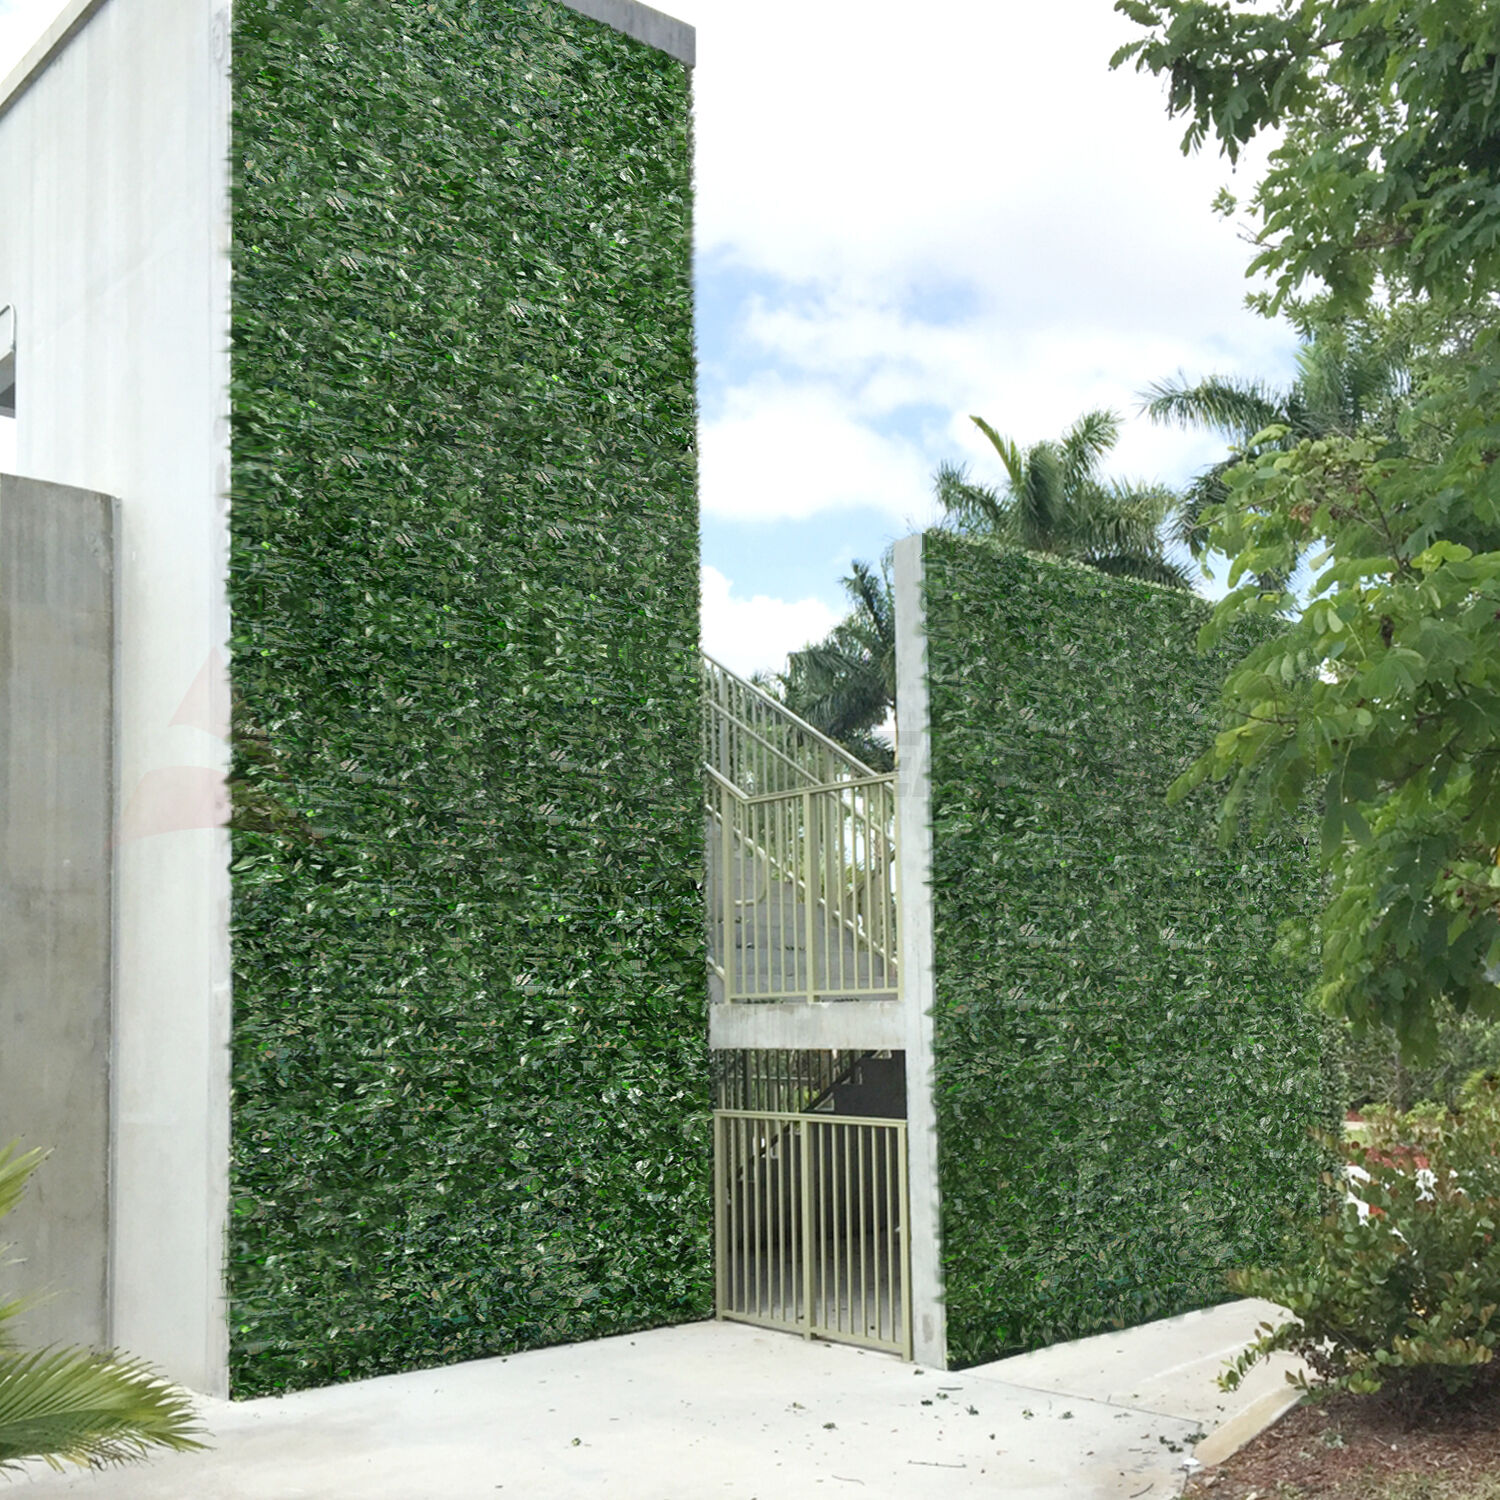 39 h faux ivy leaf privacy fence screen d cor panels for Garden privacy wall